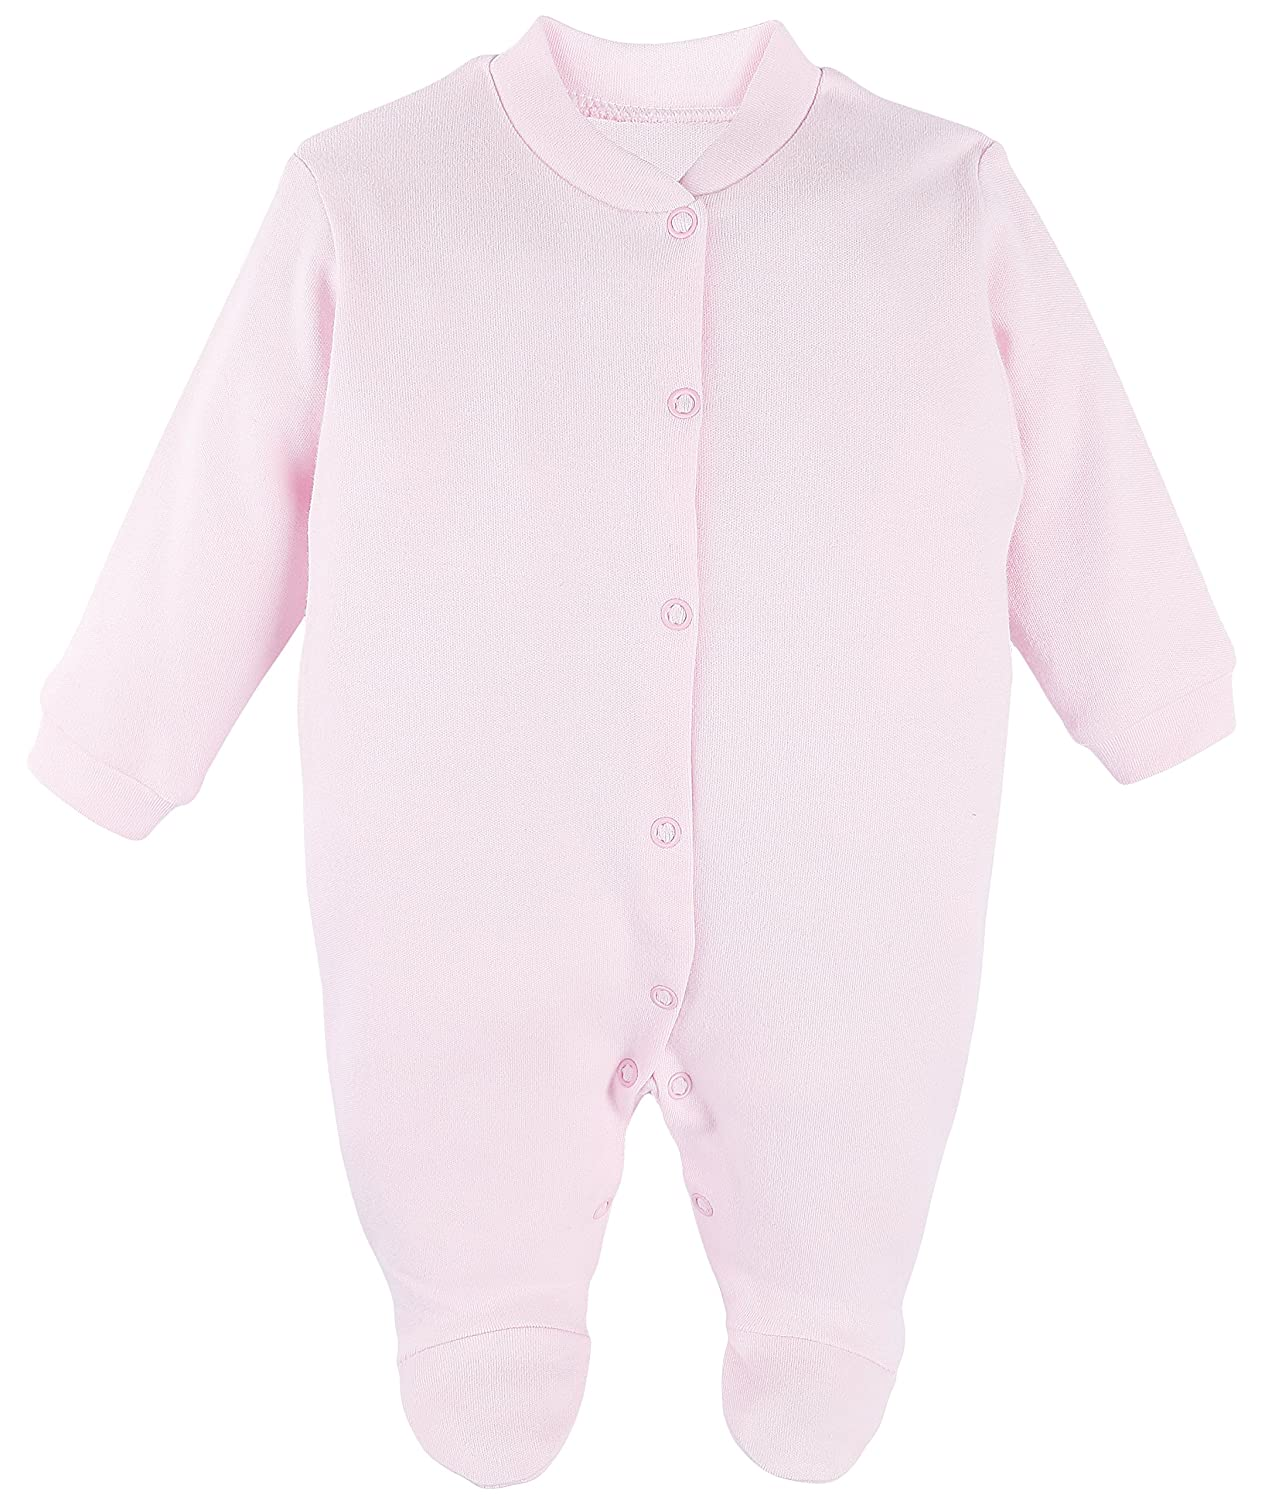 Hat and Mittens Layette Gift Set Lilax Baby Girl 3 Piece Solid Color Soft Cotton Footie